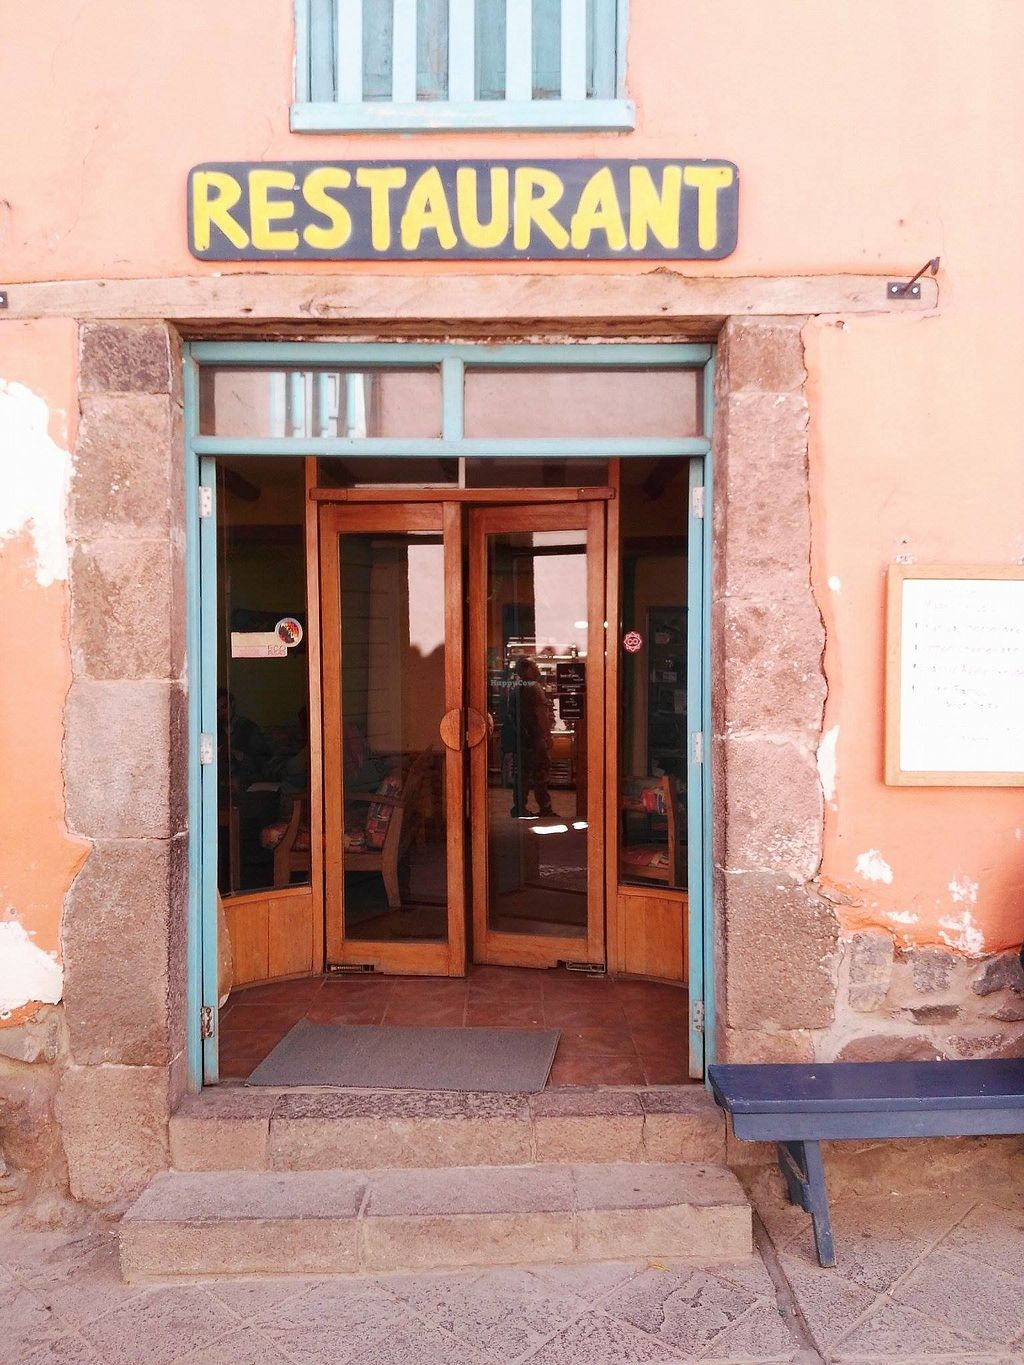 """Photo of Ulrike's Cafe  by <a href=""""/members/profile/highonhealth"""">highonhealth</a> <br/>The front door to Ulrike's! <br/> June 30, 2017  - <a href='/contact/abuse/image/94737/275349'>Report</a>"""